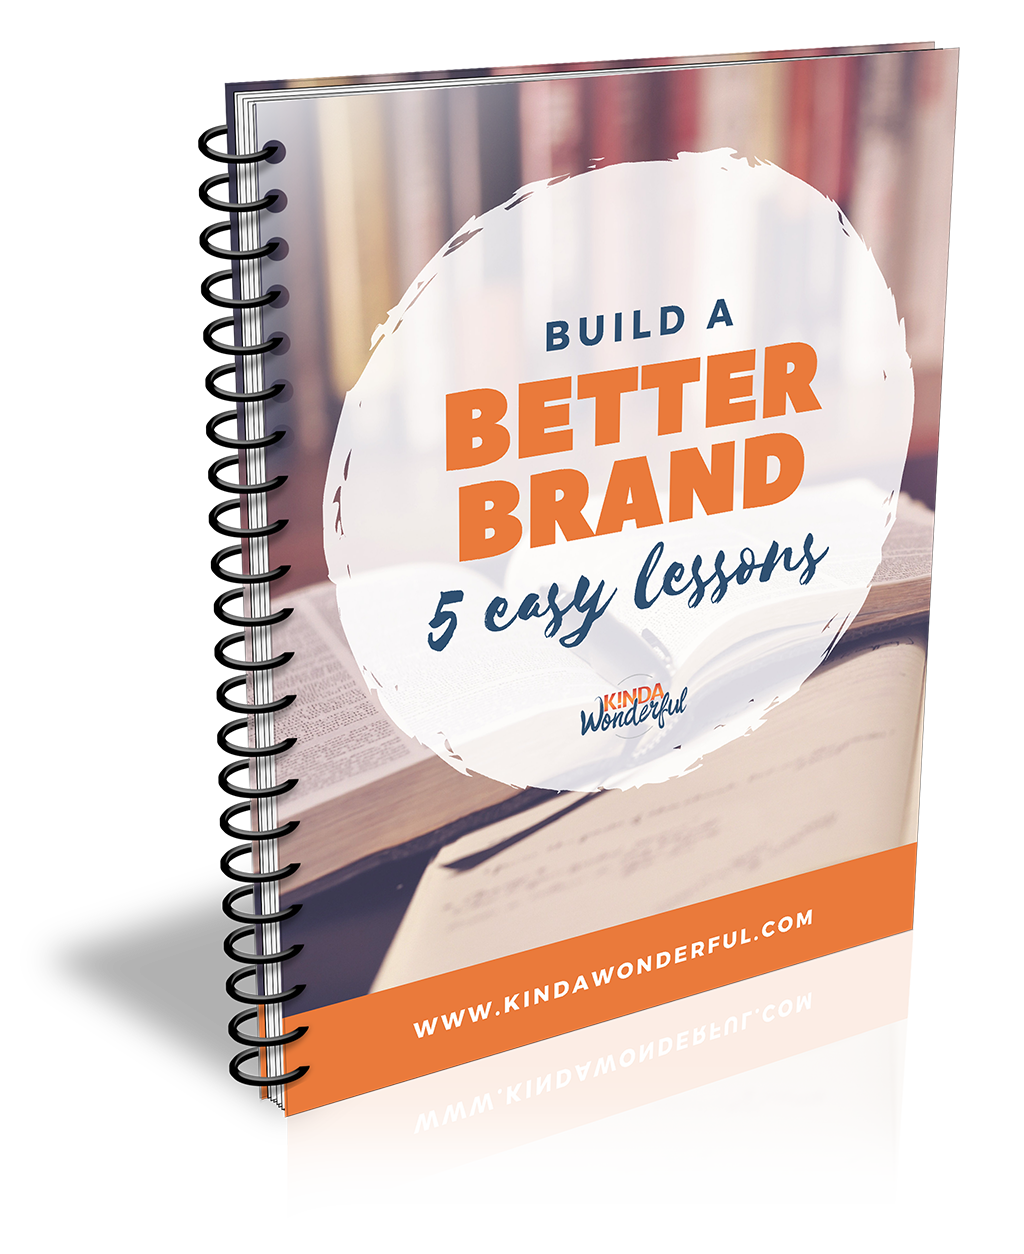 Build A Better Brand (5 Easy Lessons)